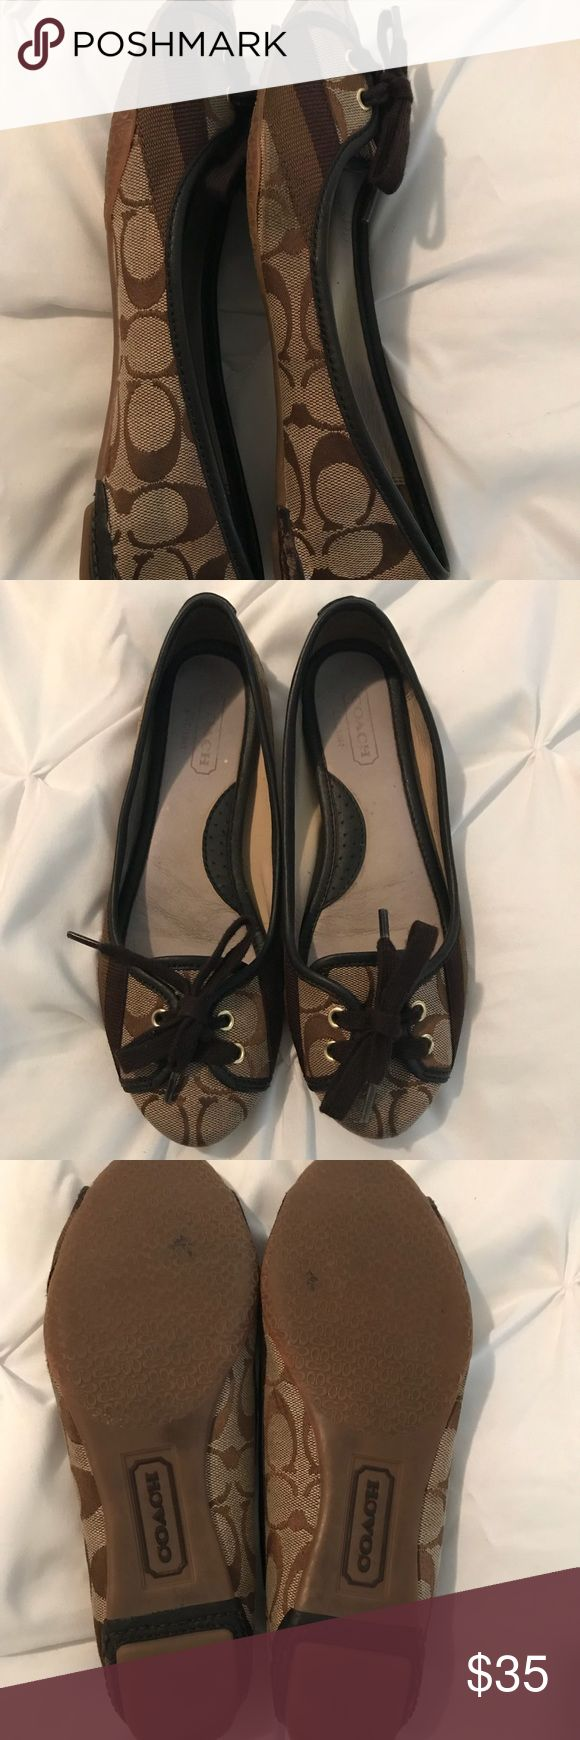 COACH FLATS 💖💖 Gently used very comfortable ! Bought at Dillard's ! Combines great with any look!💖💖 great condition minor pilling on one of the heels but great condition top view. Size 6, I'm a 6.5 and they fit just fine. Accepting offers 💖🙏 Coach Shoes Flats & Loafers